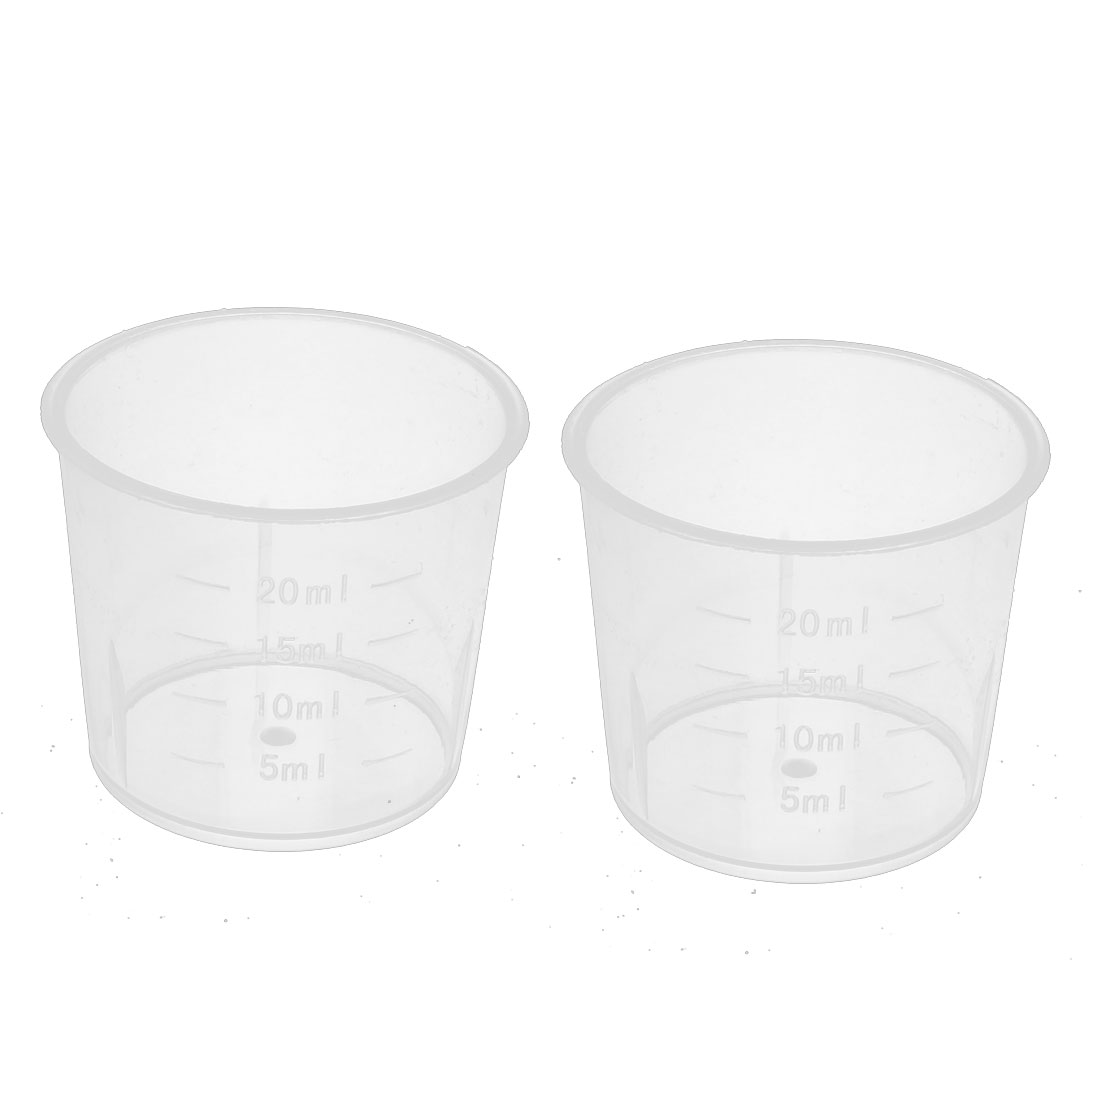 2pcs 20ml Capacity Kitchen Laboratory PP Cylindrical Measuring Cup Clear